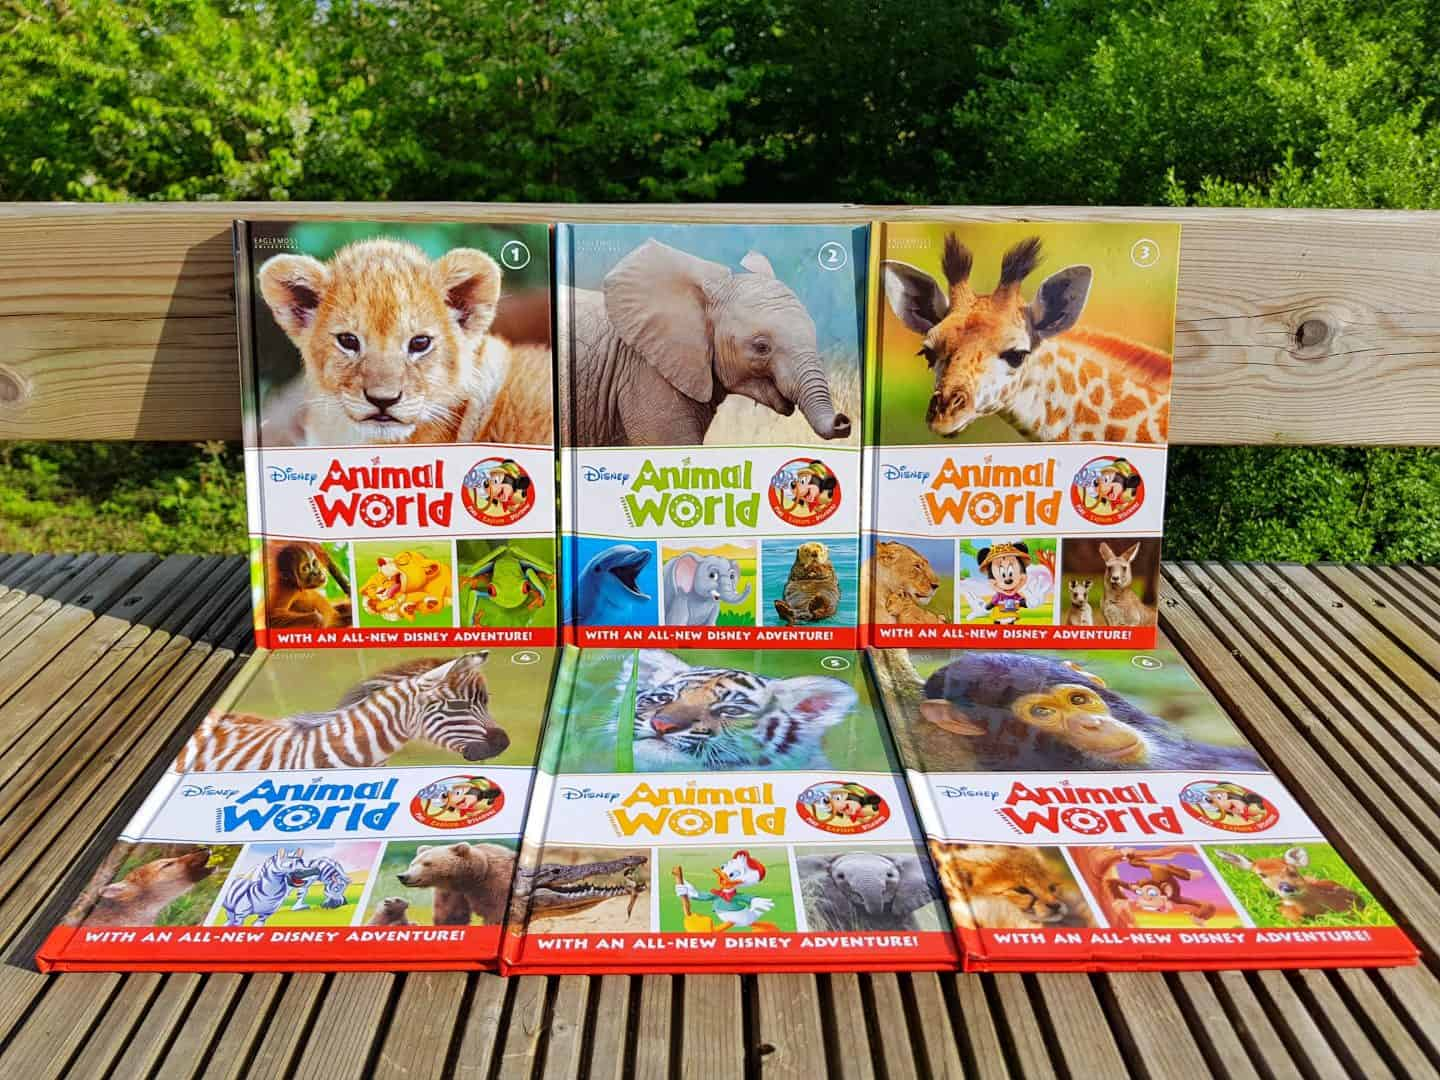 Disney Animal World books and playset